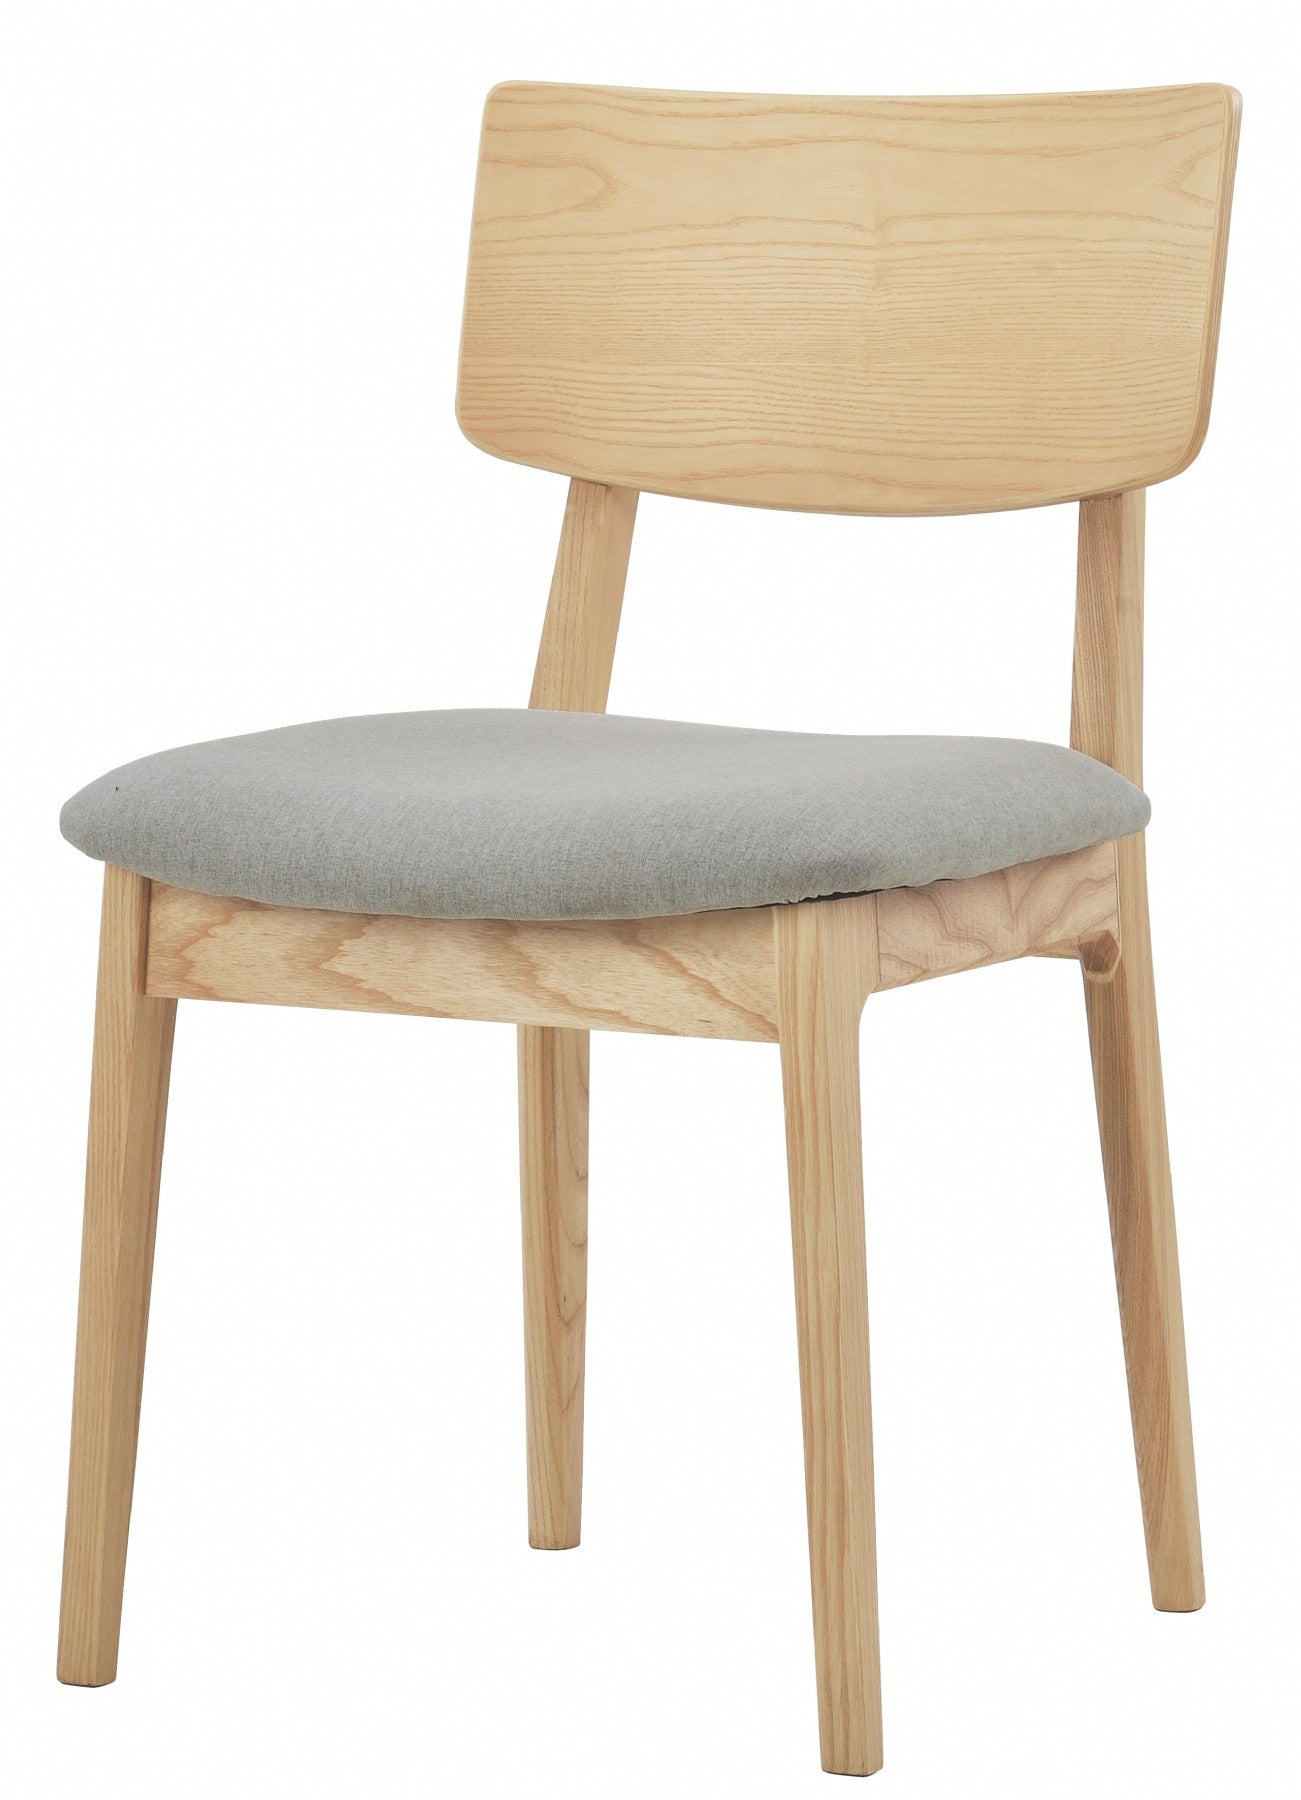 buy NOFU 597 Dining Chair - Dust Grey/Natural Ash online